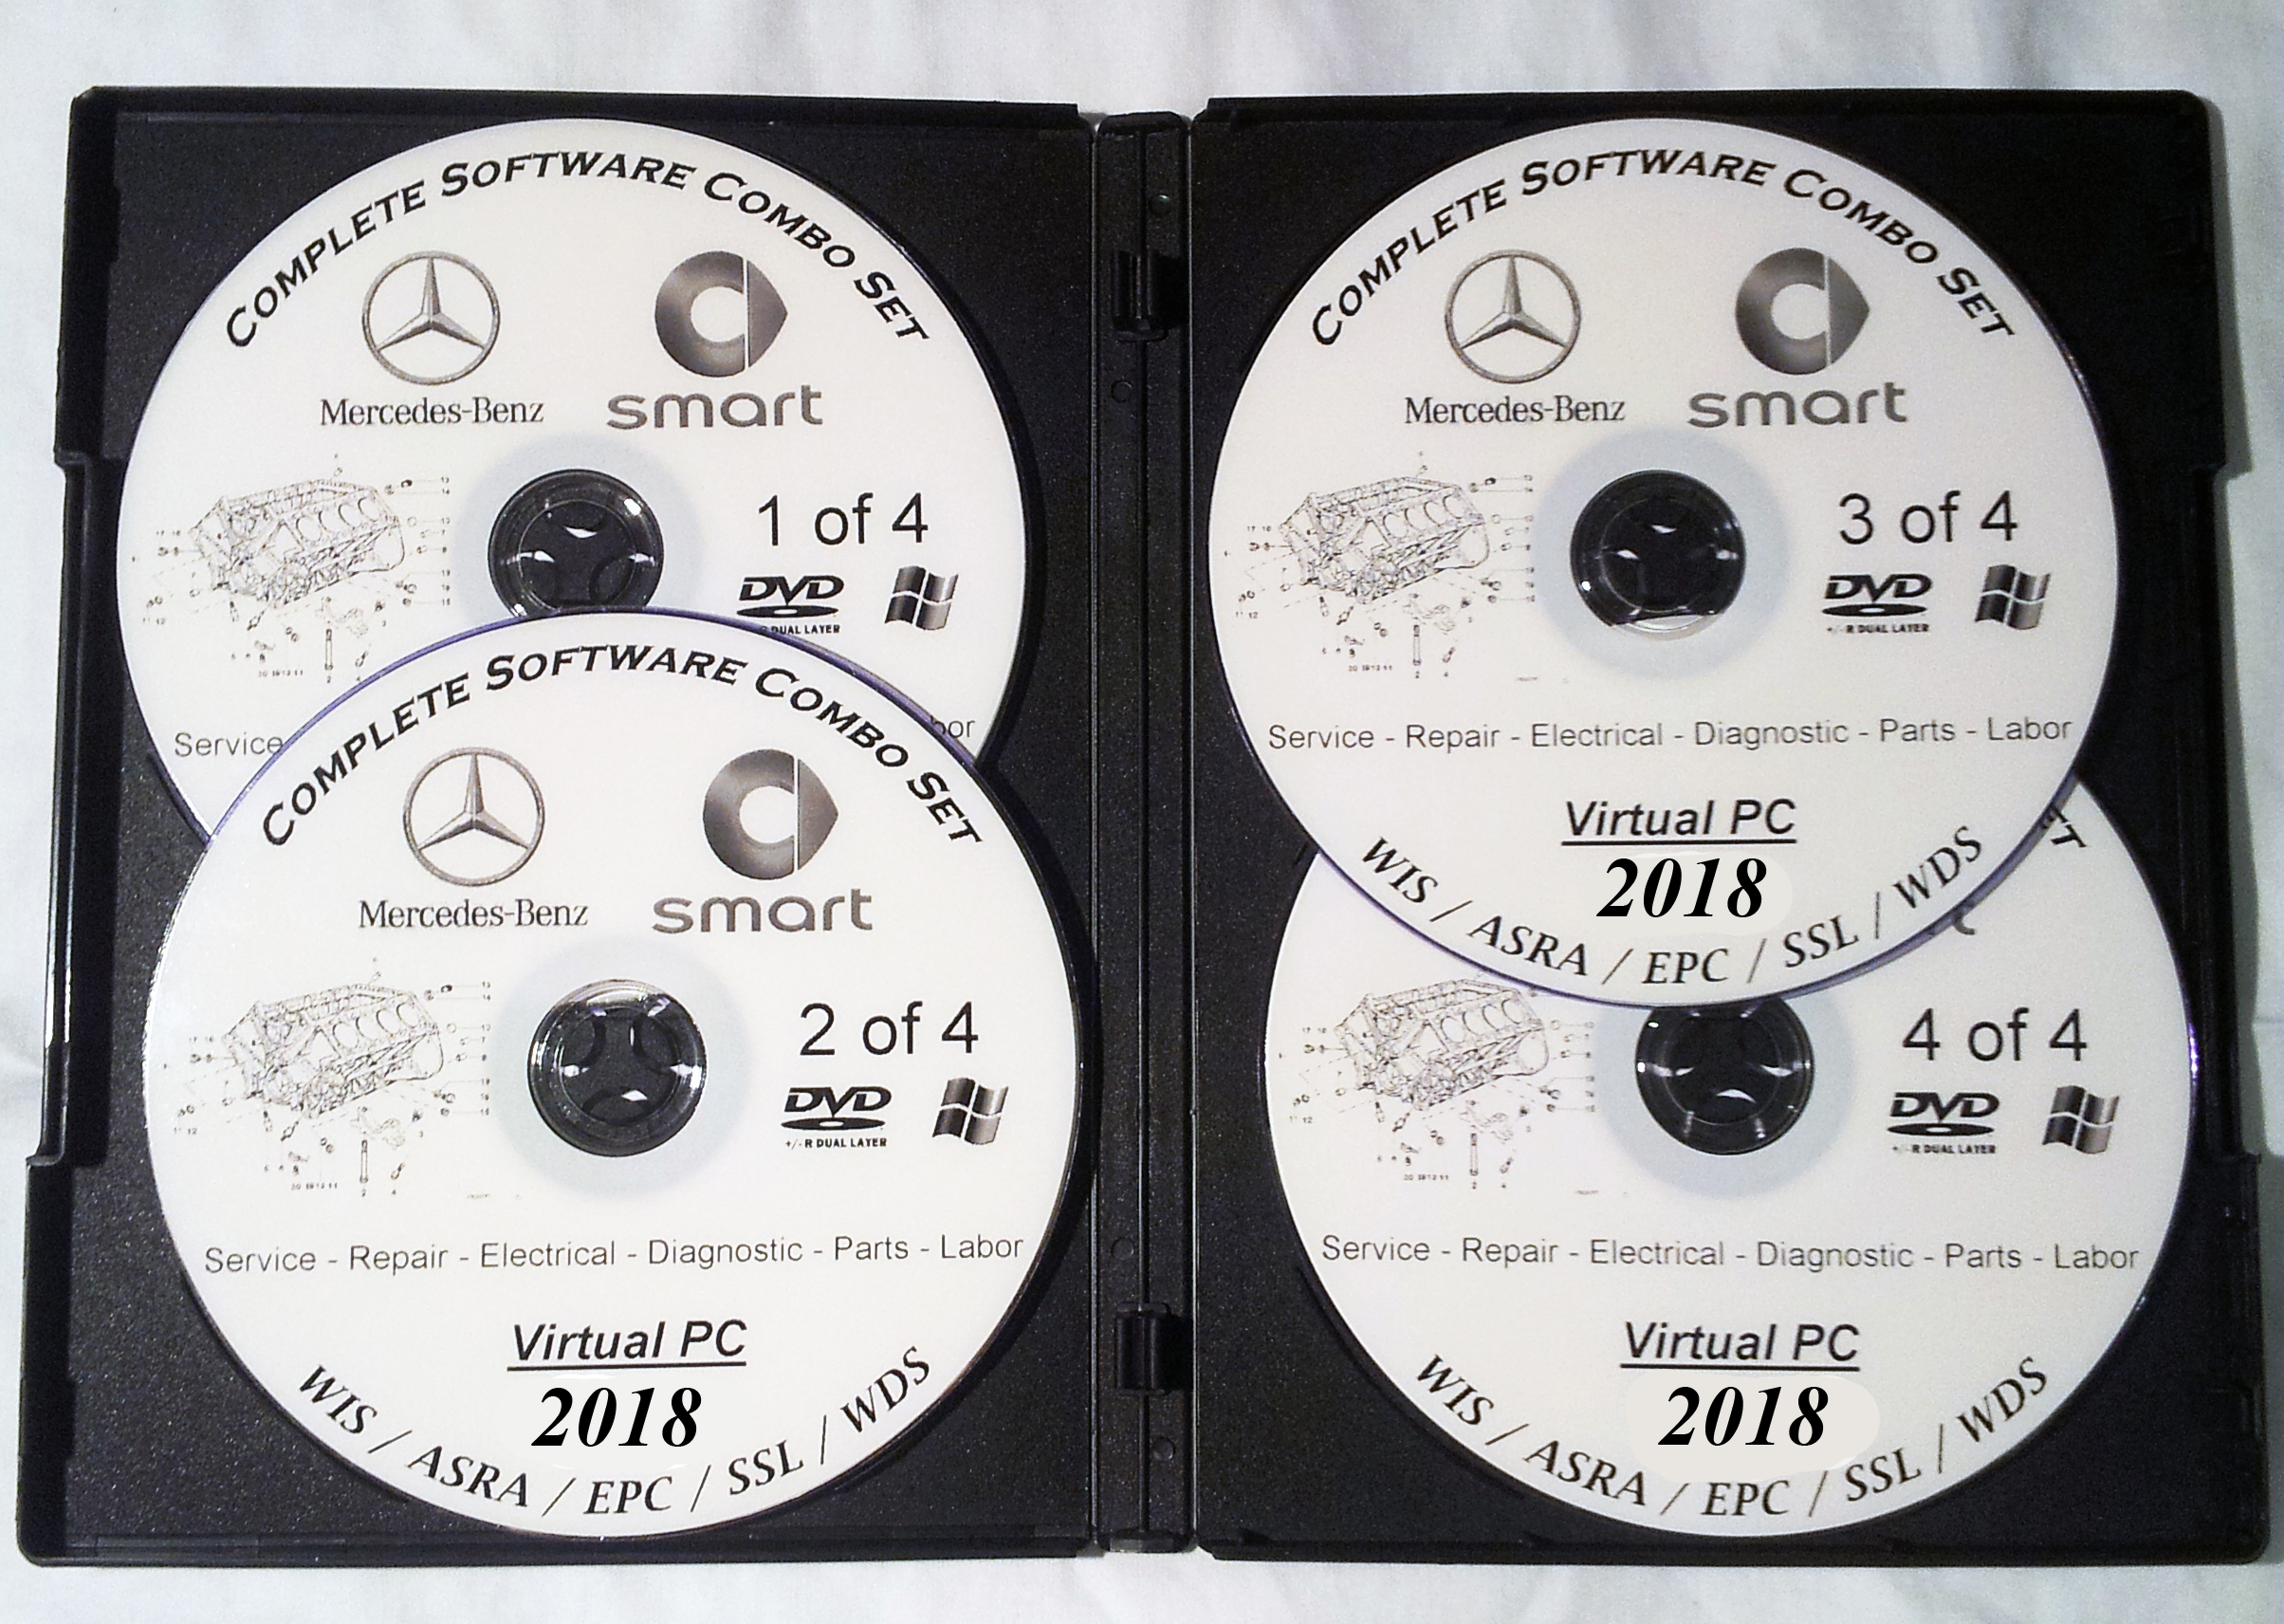 Mercedes 2018 Electrical Wiring Diagrams Schematics Wis Epc Repair 1997 Diagram System Covers All Smart Vehicles From 1986